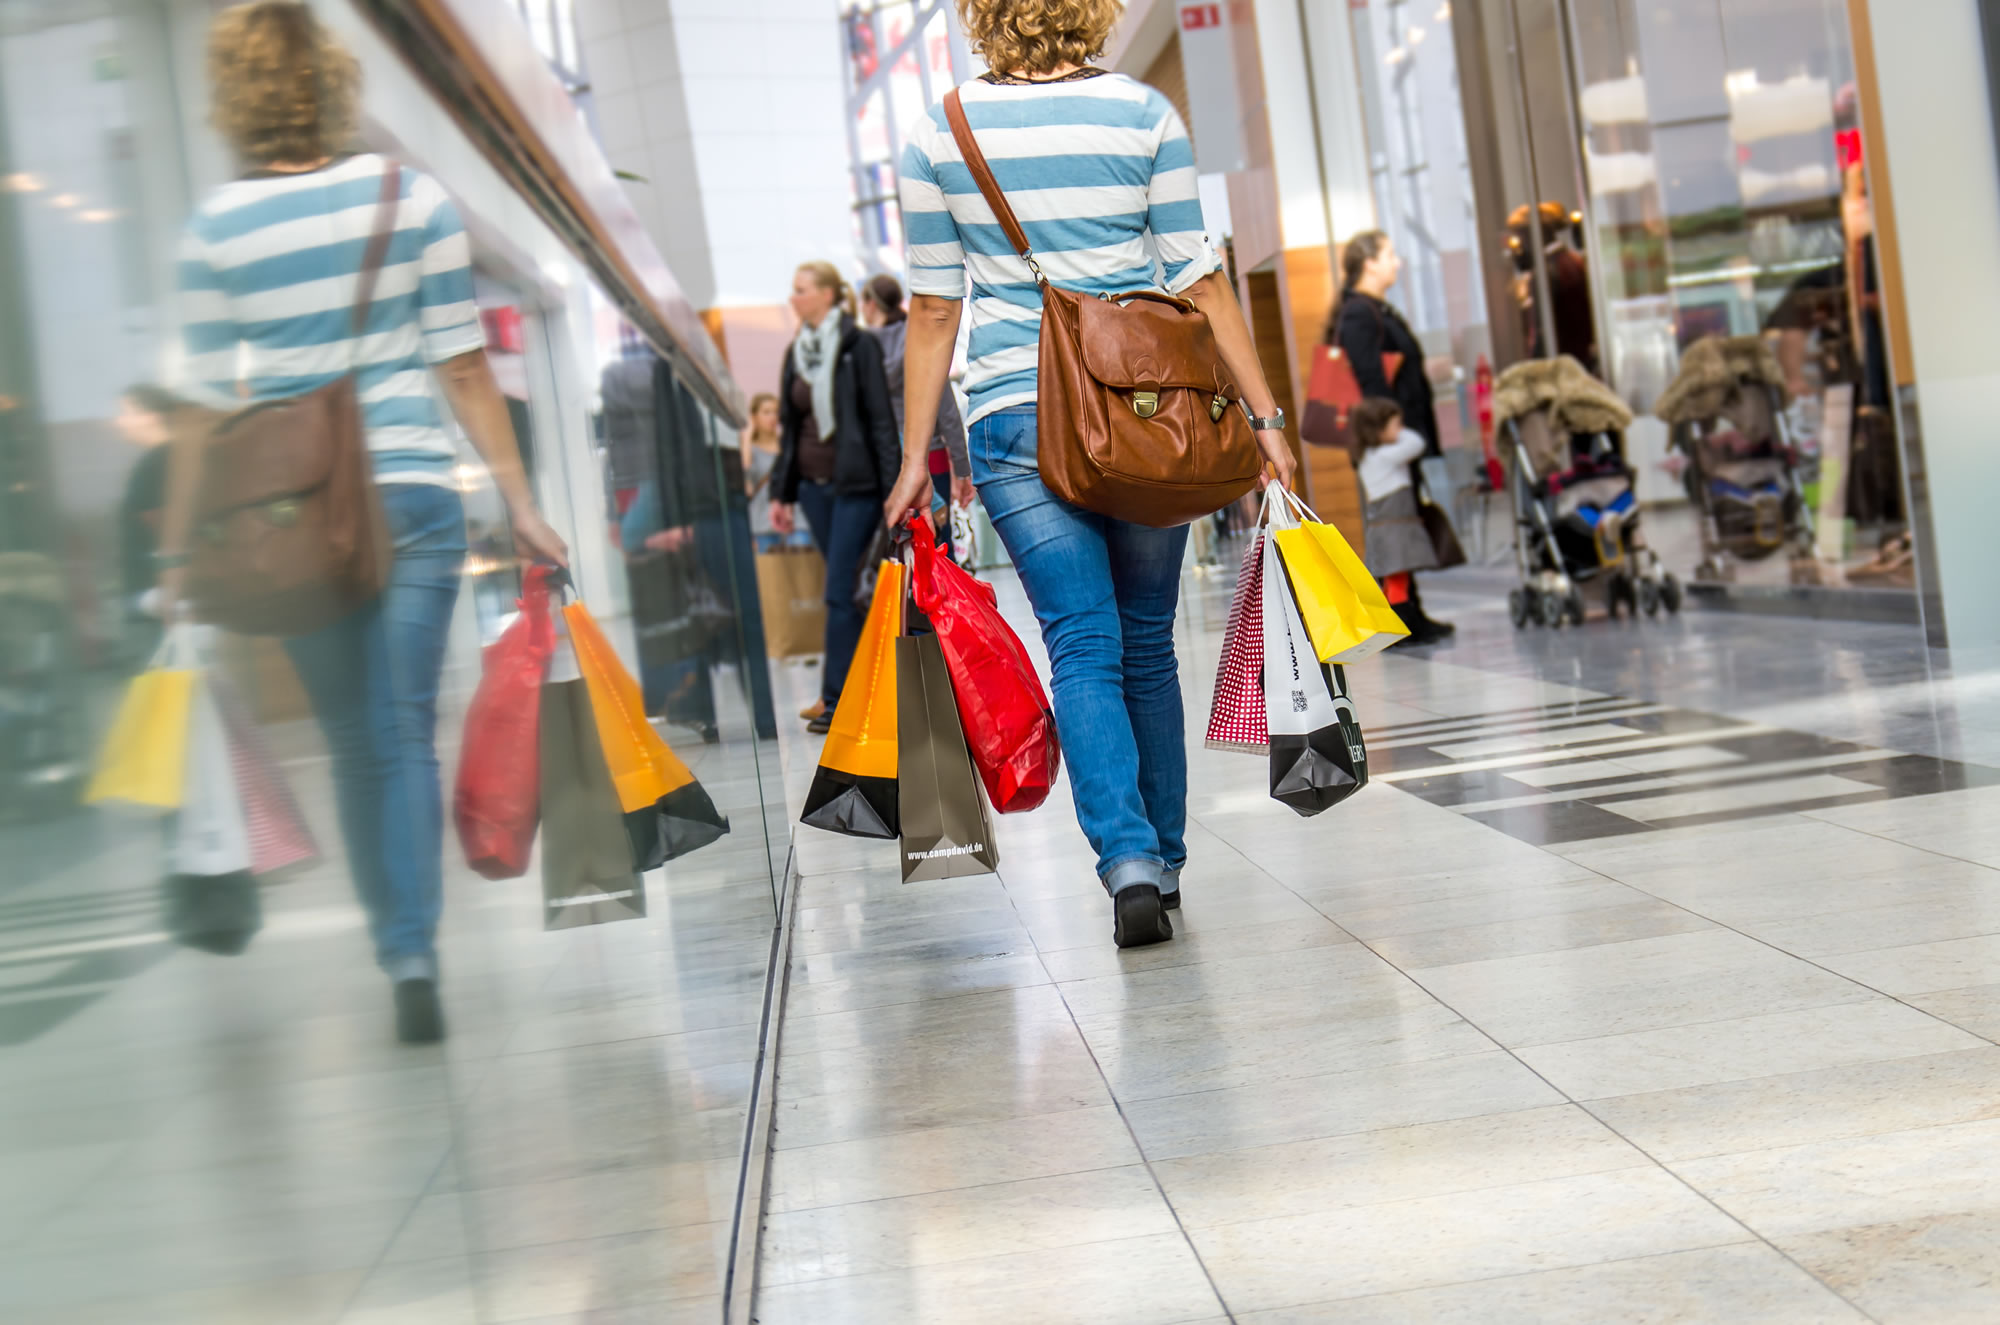 Shopping and Store Injury Compensation - No Win, No Fee / Accident & Personal Injury Solicitors / Personal Injury Lawyers Aberdeen